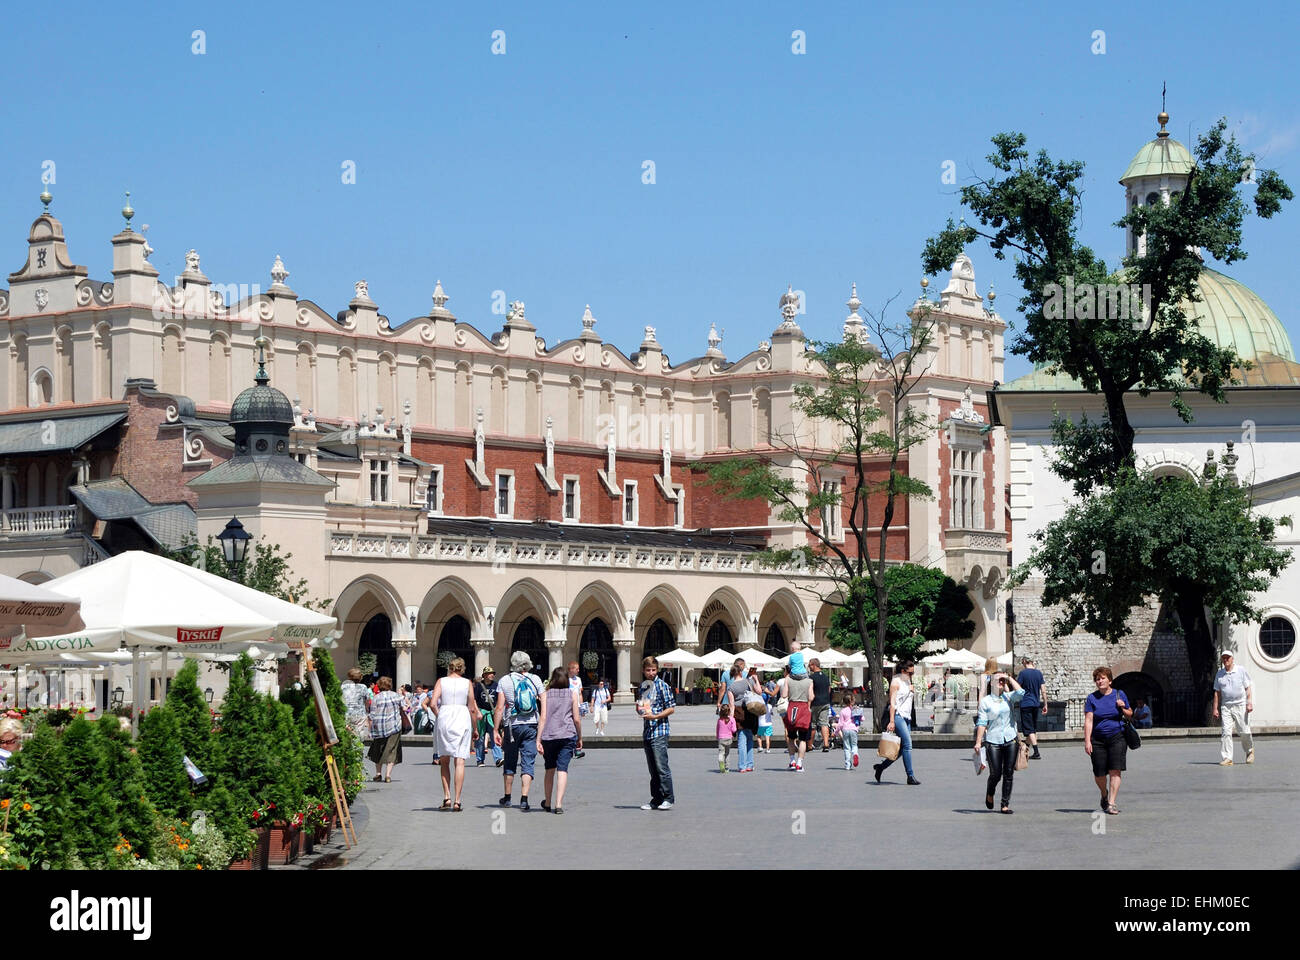 Main Square of Krakow in Poland with the Cloth Halls. - Stock Image